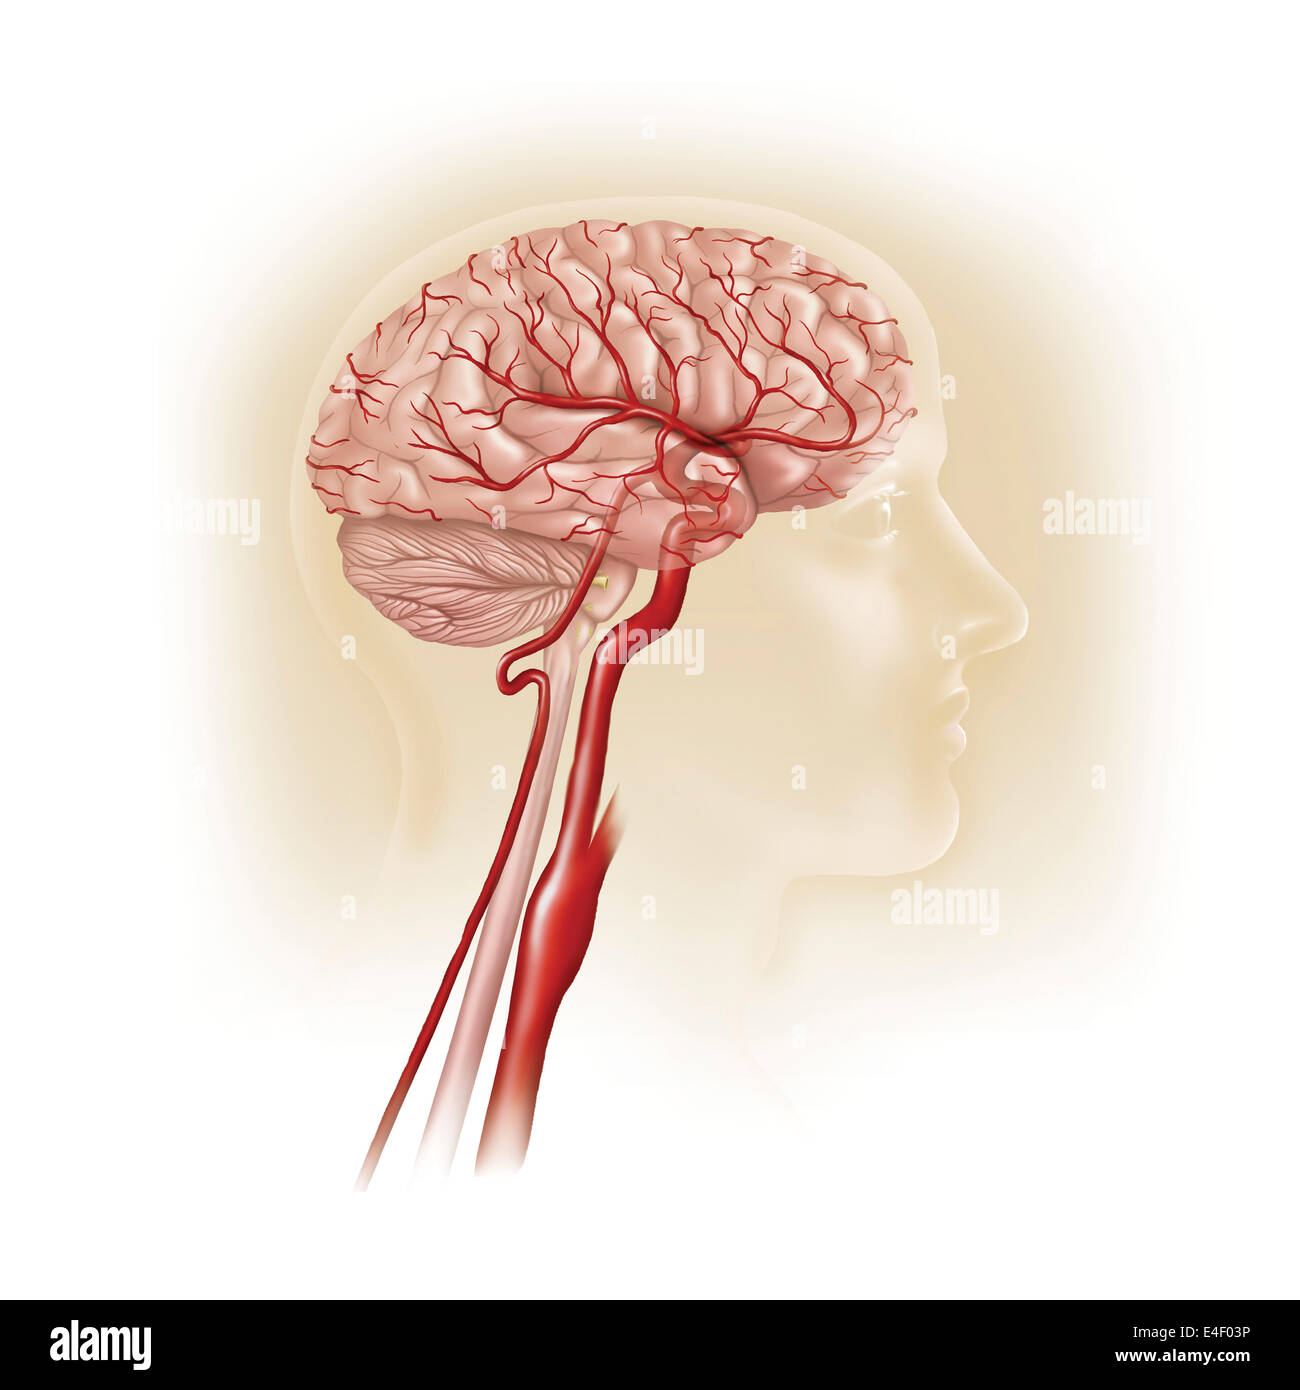 Side view of human brain showing internal carotid artery. - Stock Image